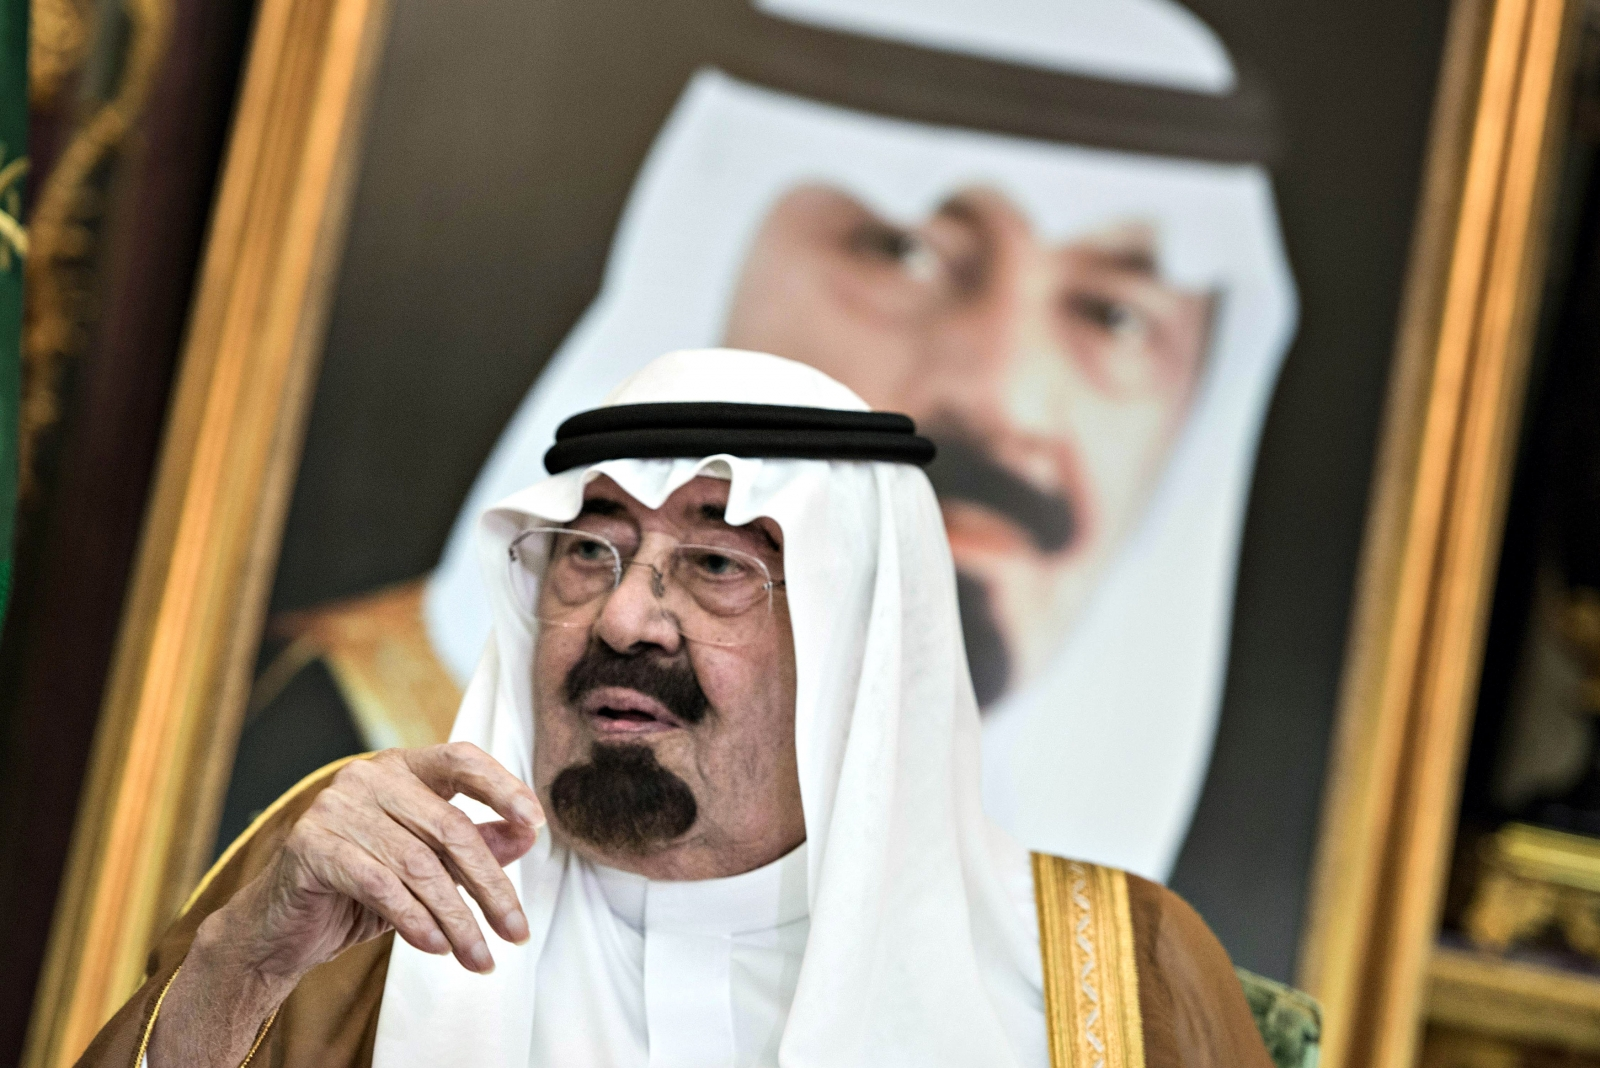 the kingdom of saudi arabia The capital city is called riyadh and islam is the official religion and arabic as their official language the kingdom uses saudi riyal as their currency and has an approximate population of 29,994,272 people as at 2013 with a gdp of approximately $ 1652 trillion.